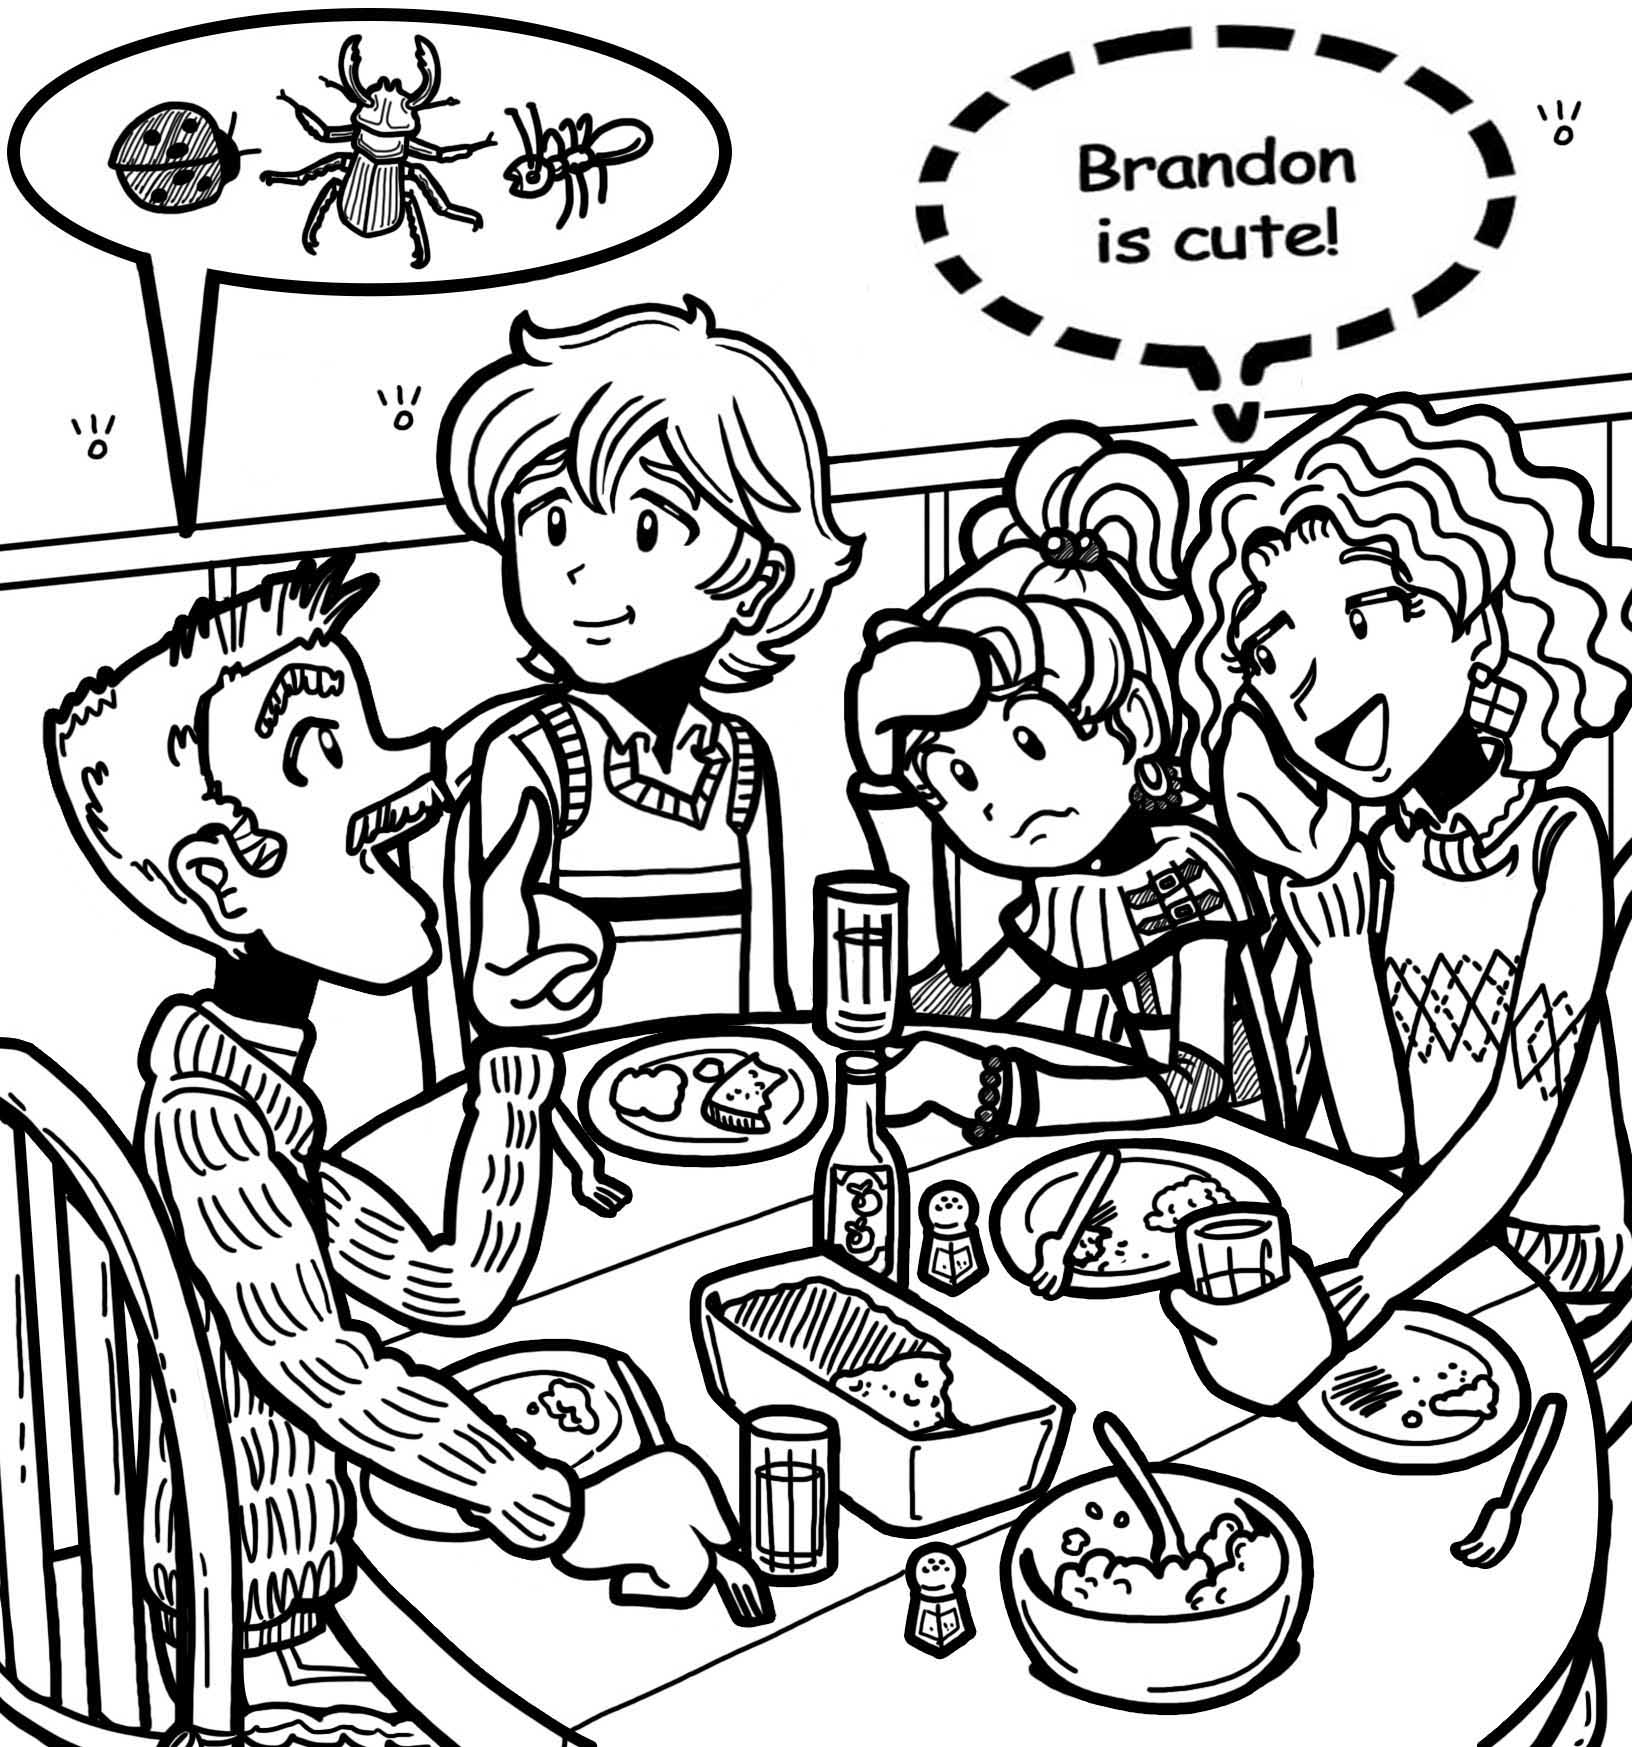 Coloring pages for dork diaries - March 19 Brandon Over For Dinner Jpg